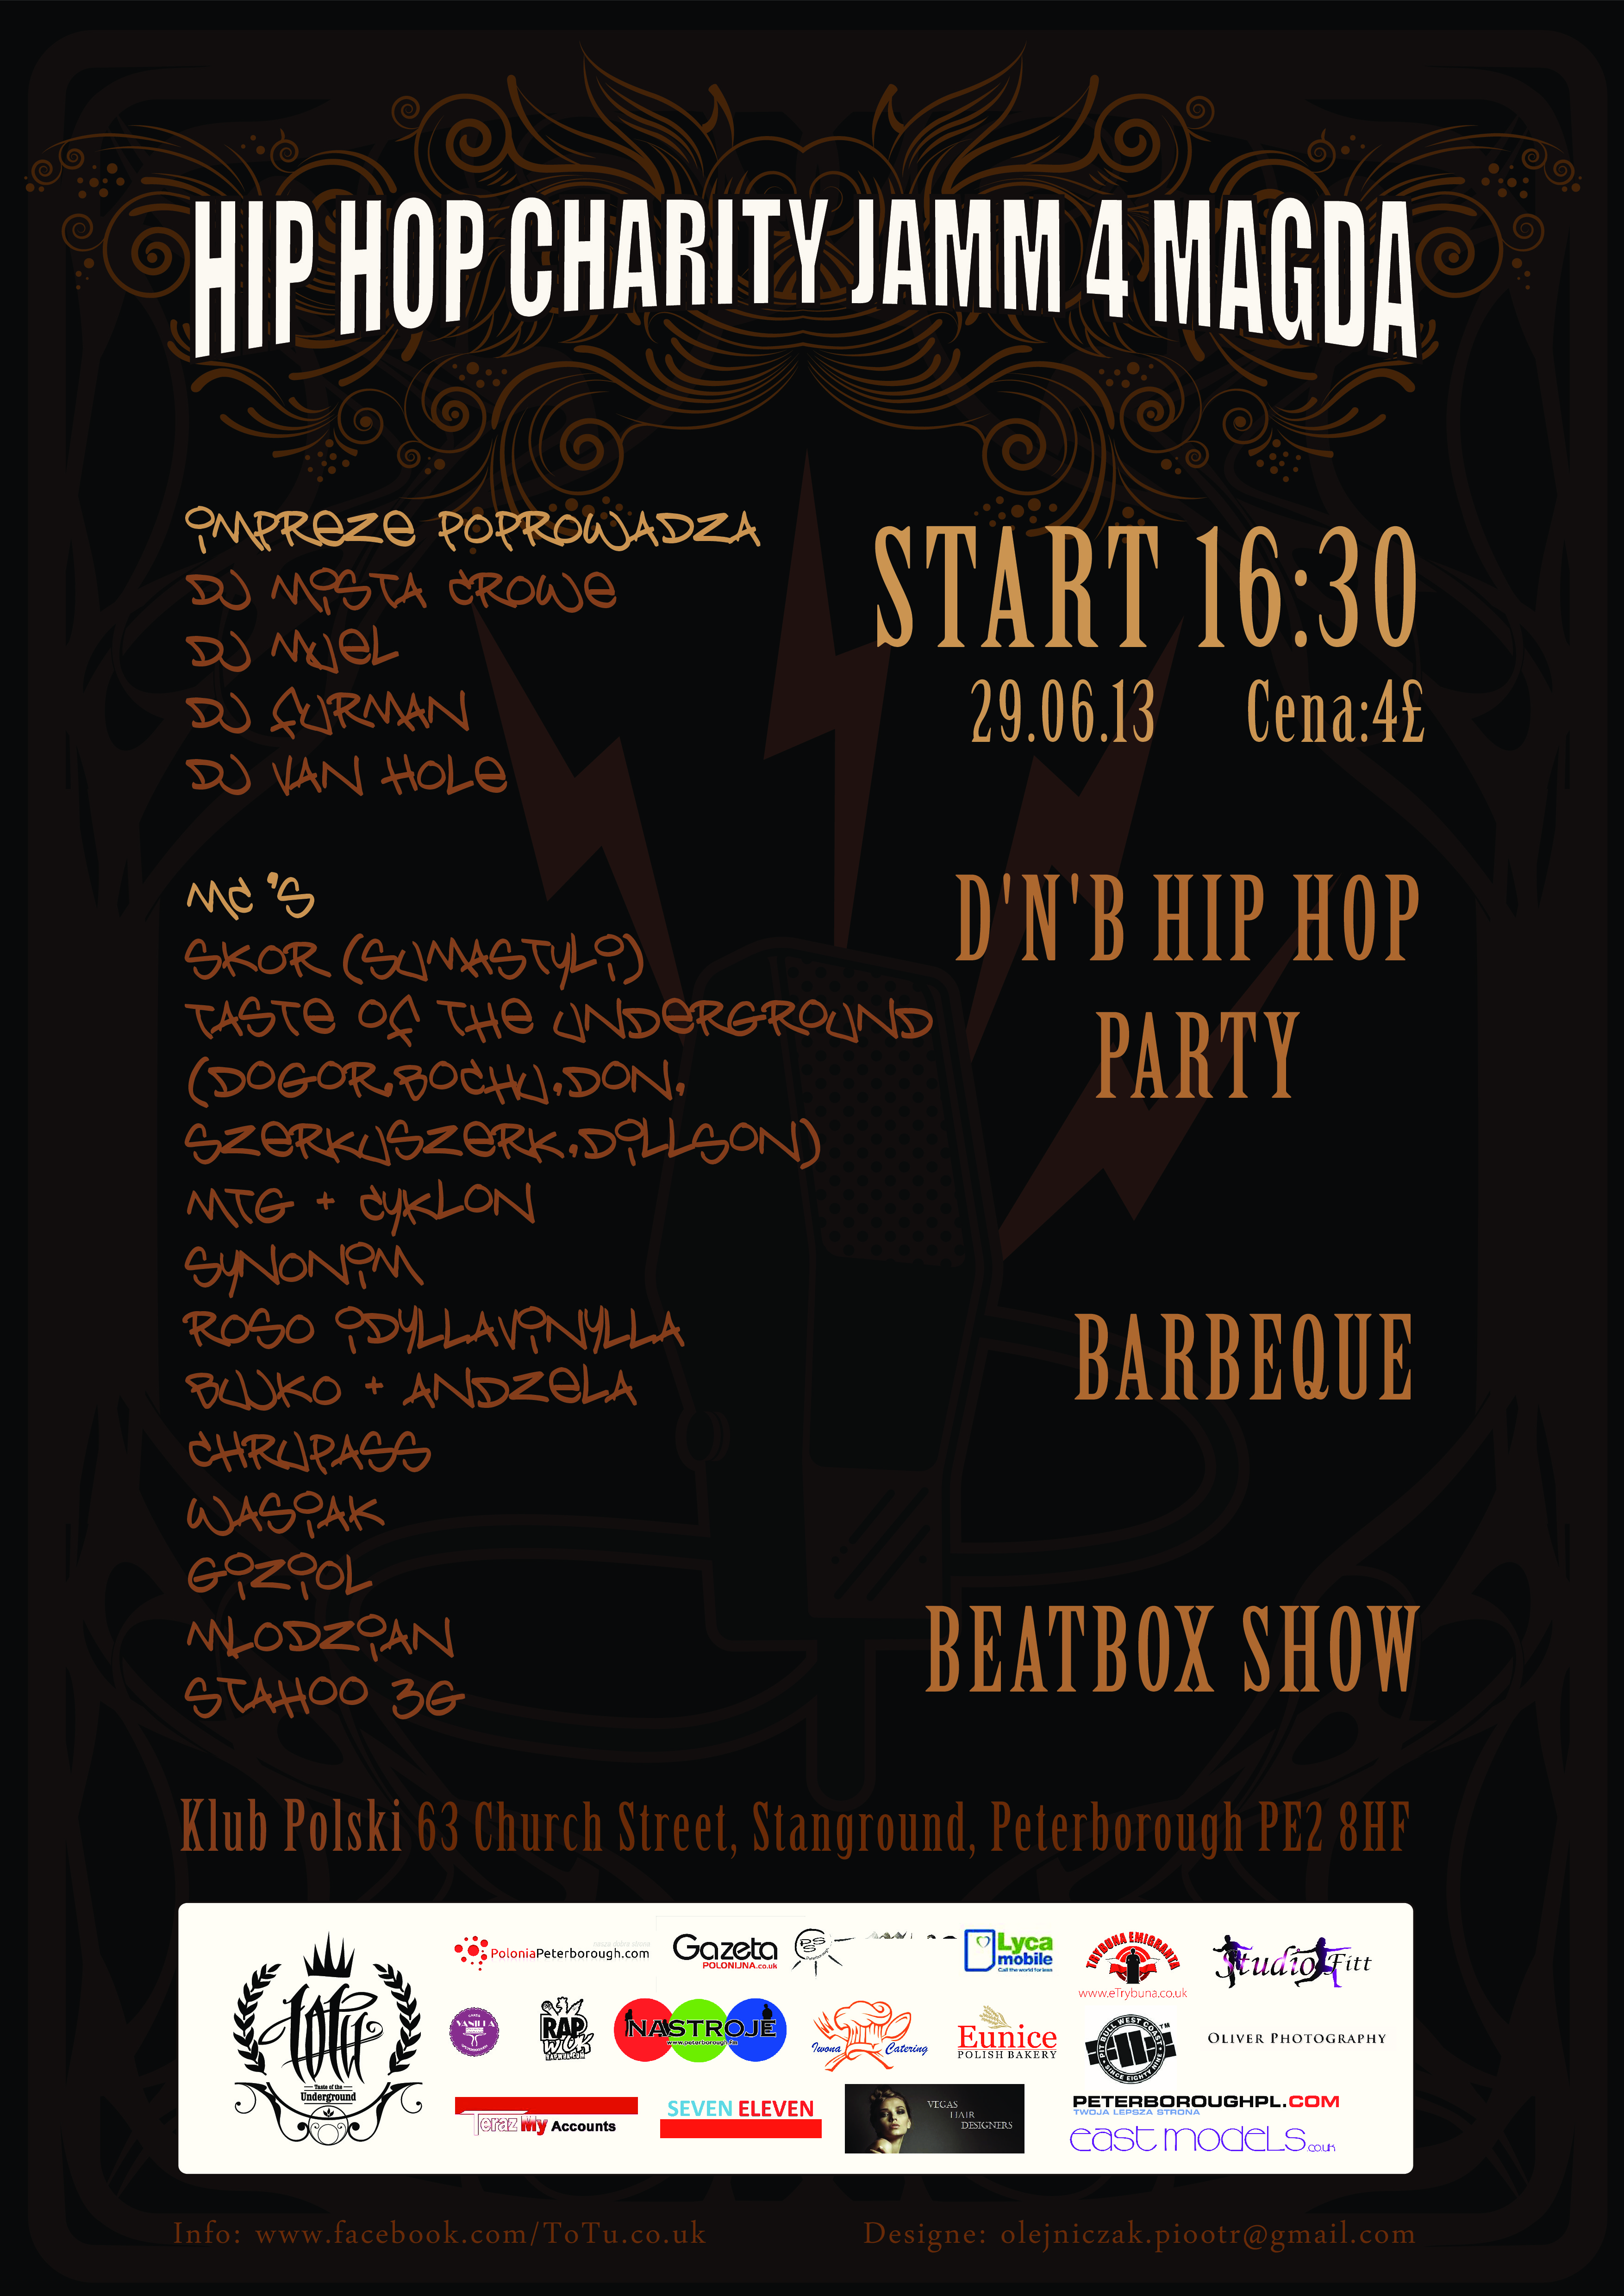 hip hop charity jamm 4 magda plakat-page-0